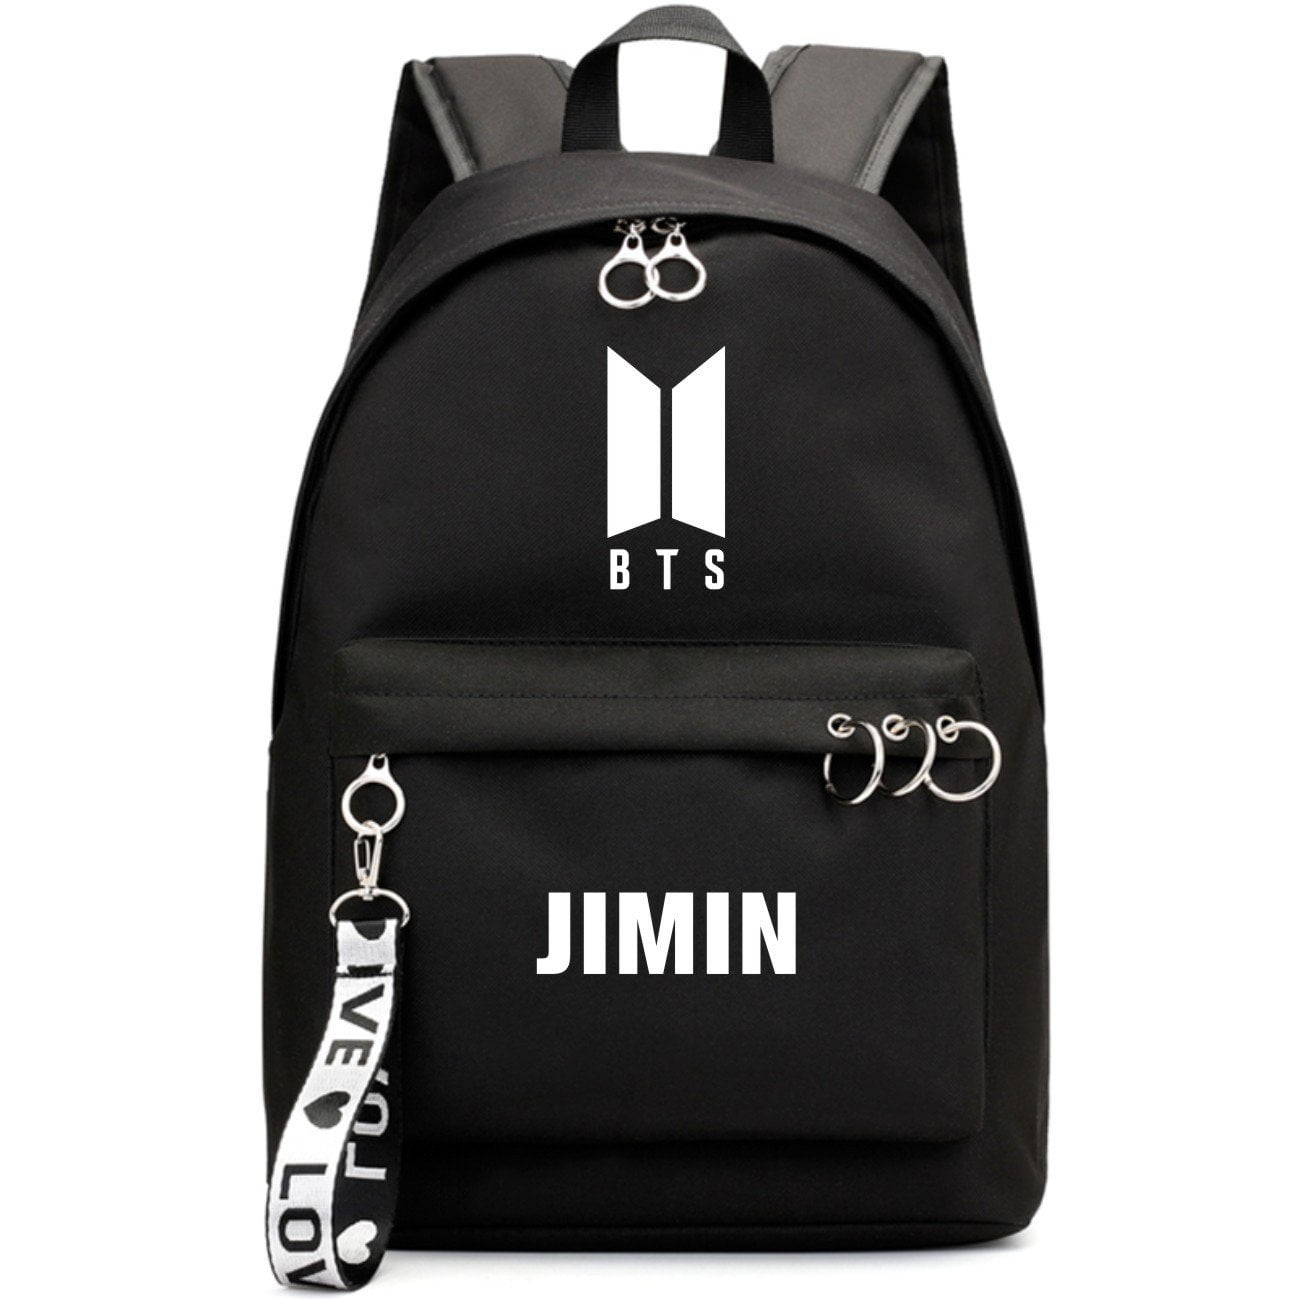 BTS New Logo Large Capacity Backpack / School Bag with Silver Rings in 2 Colours  583071224455#3925845045044